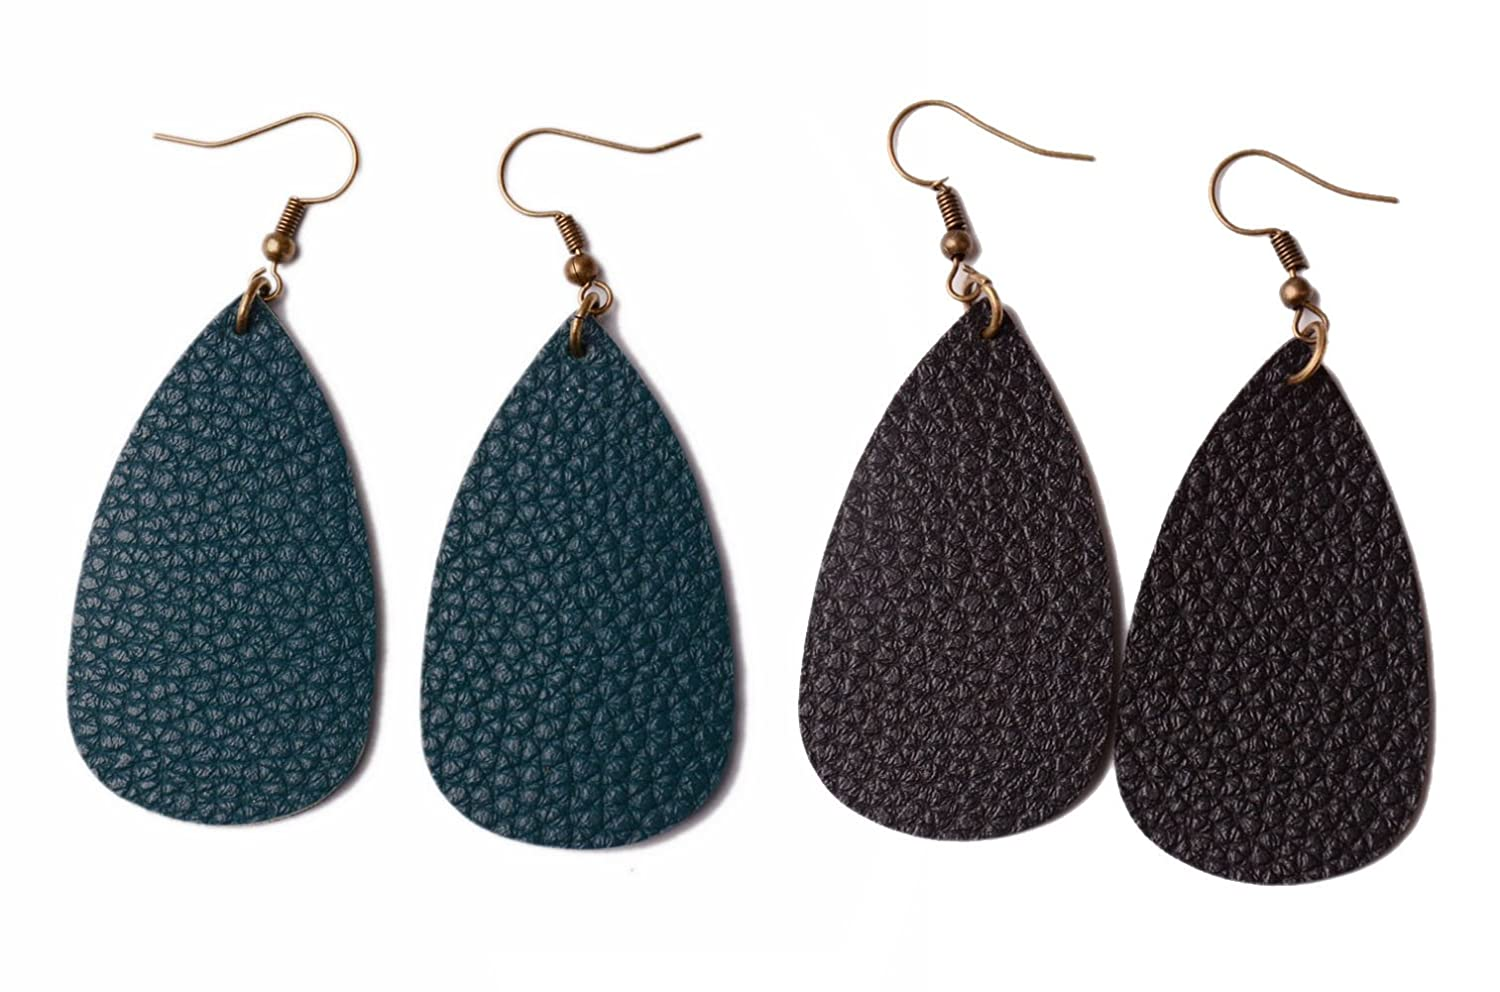 L/&N Rainbery Teardrop Leather Earrings Antique Looking Leather Dangle Earrings 2 Pairs Pack